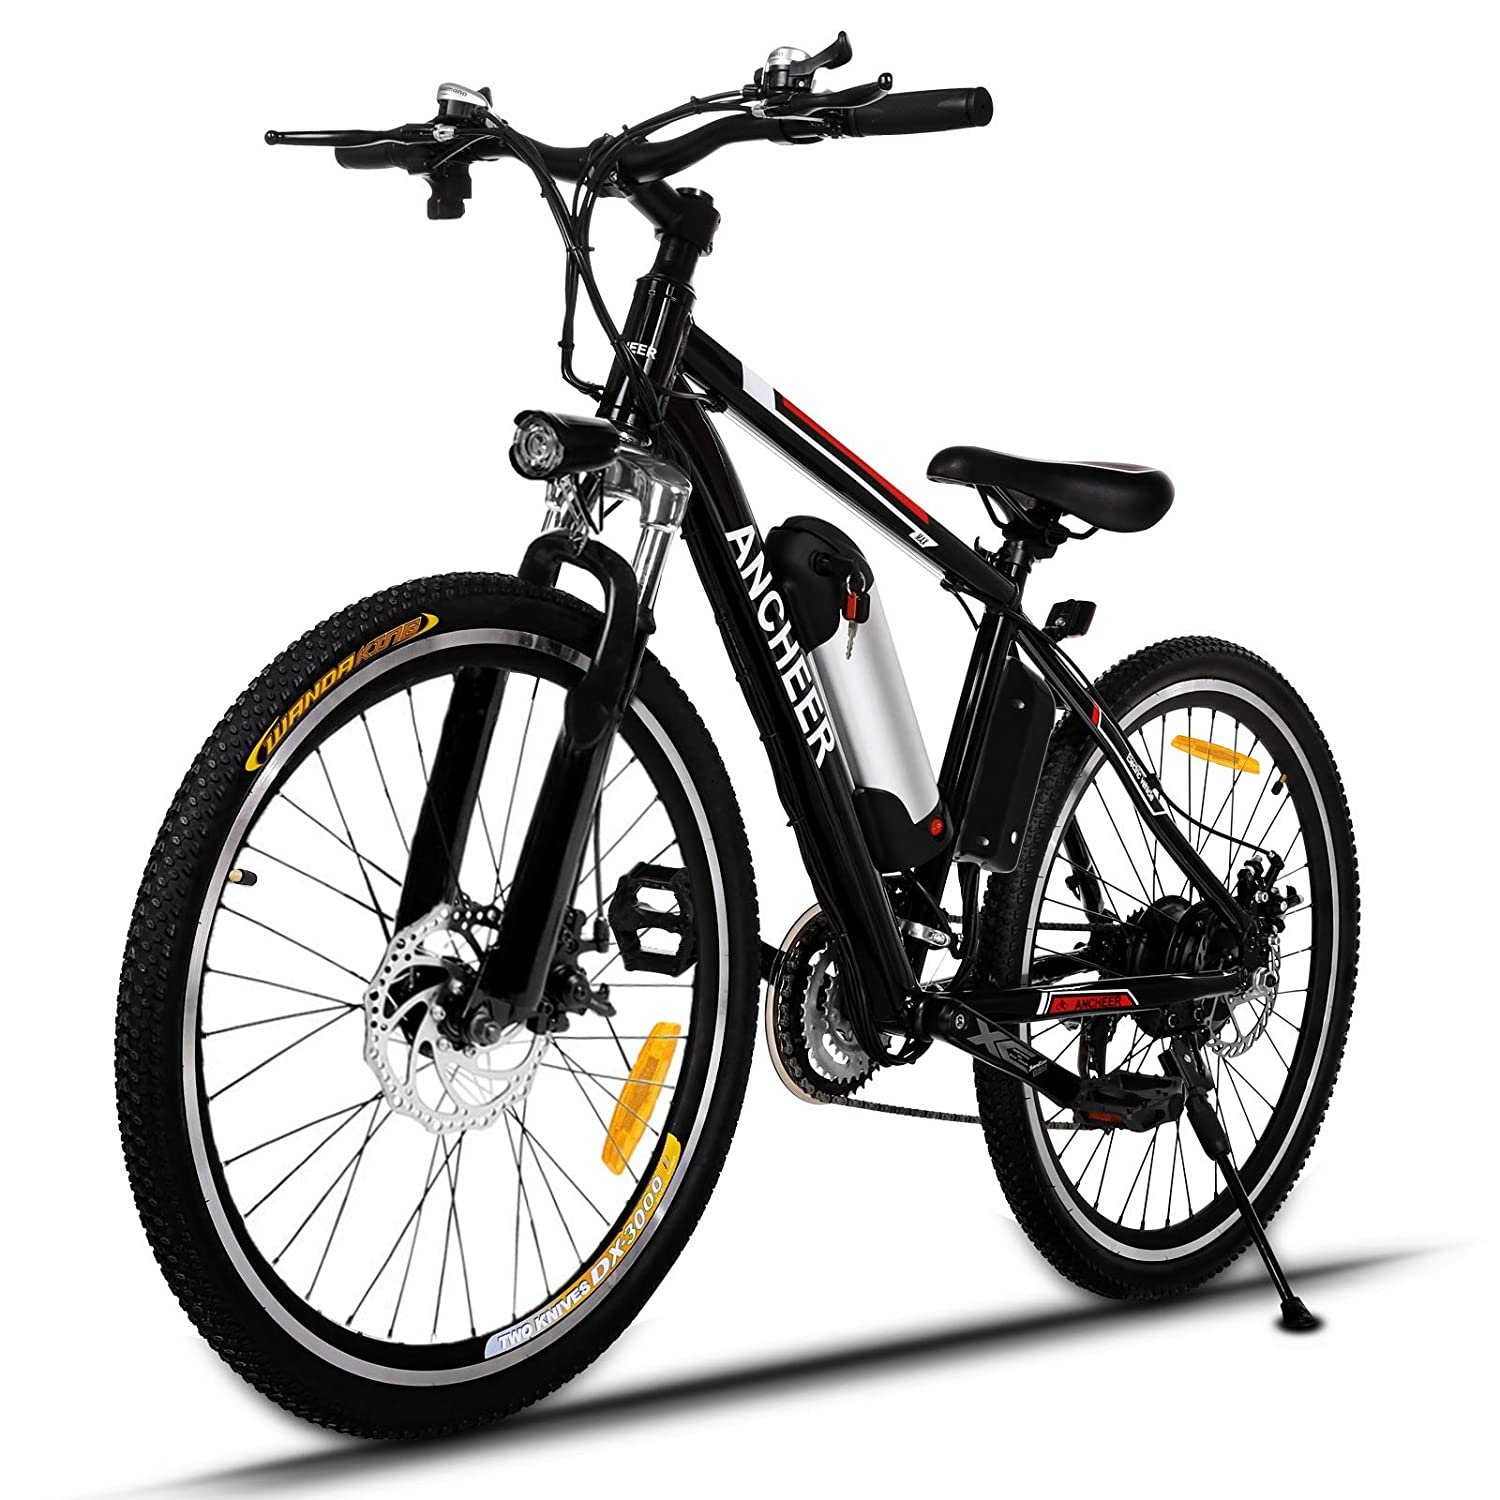 Ancheer Power Plus Electric Mountain Bike with Removable Lithium-Ion Battery, Battery Charger